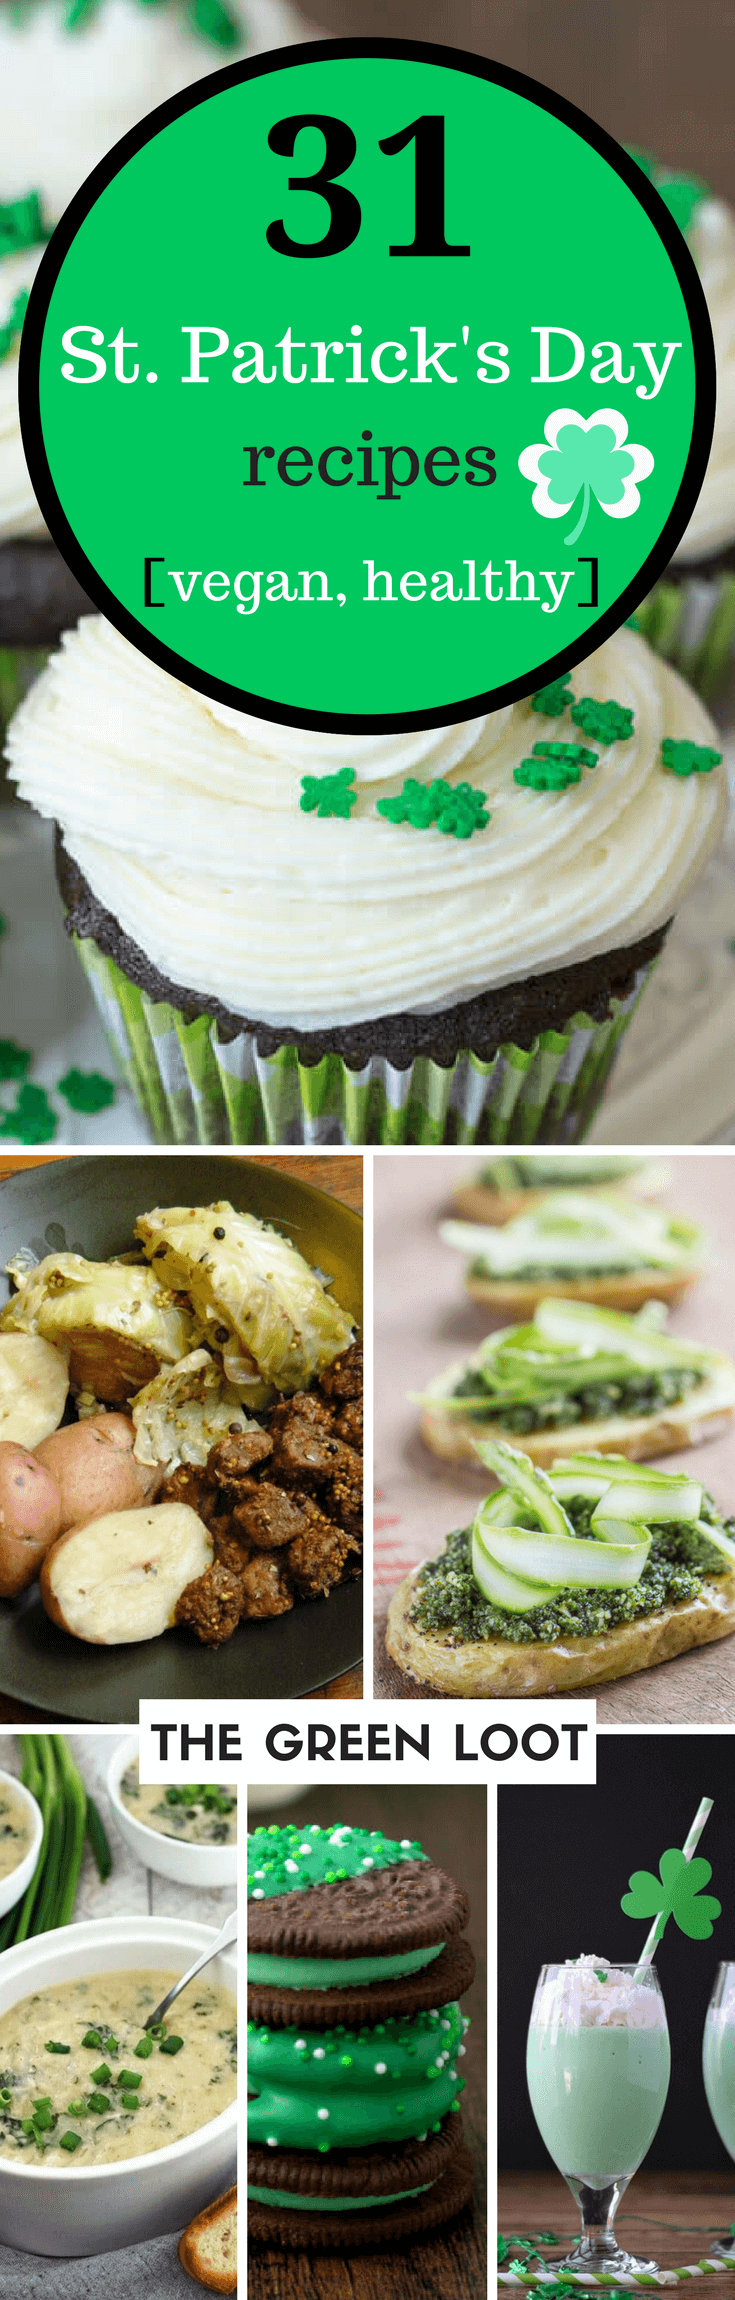 Vegan St. Patrick's Day recipes include healthy, green food like appetizers and desserts. Whether it's cake, cupcakes, shepherd pie or else, you can easily make these awesome healthy meals to celebrate this fun Irish day! | The Green Loot #vegan #stpatricksday